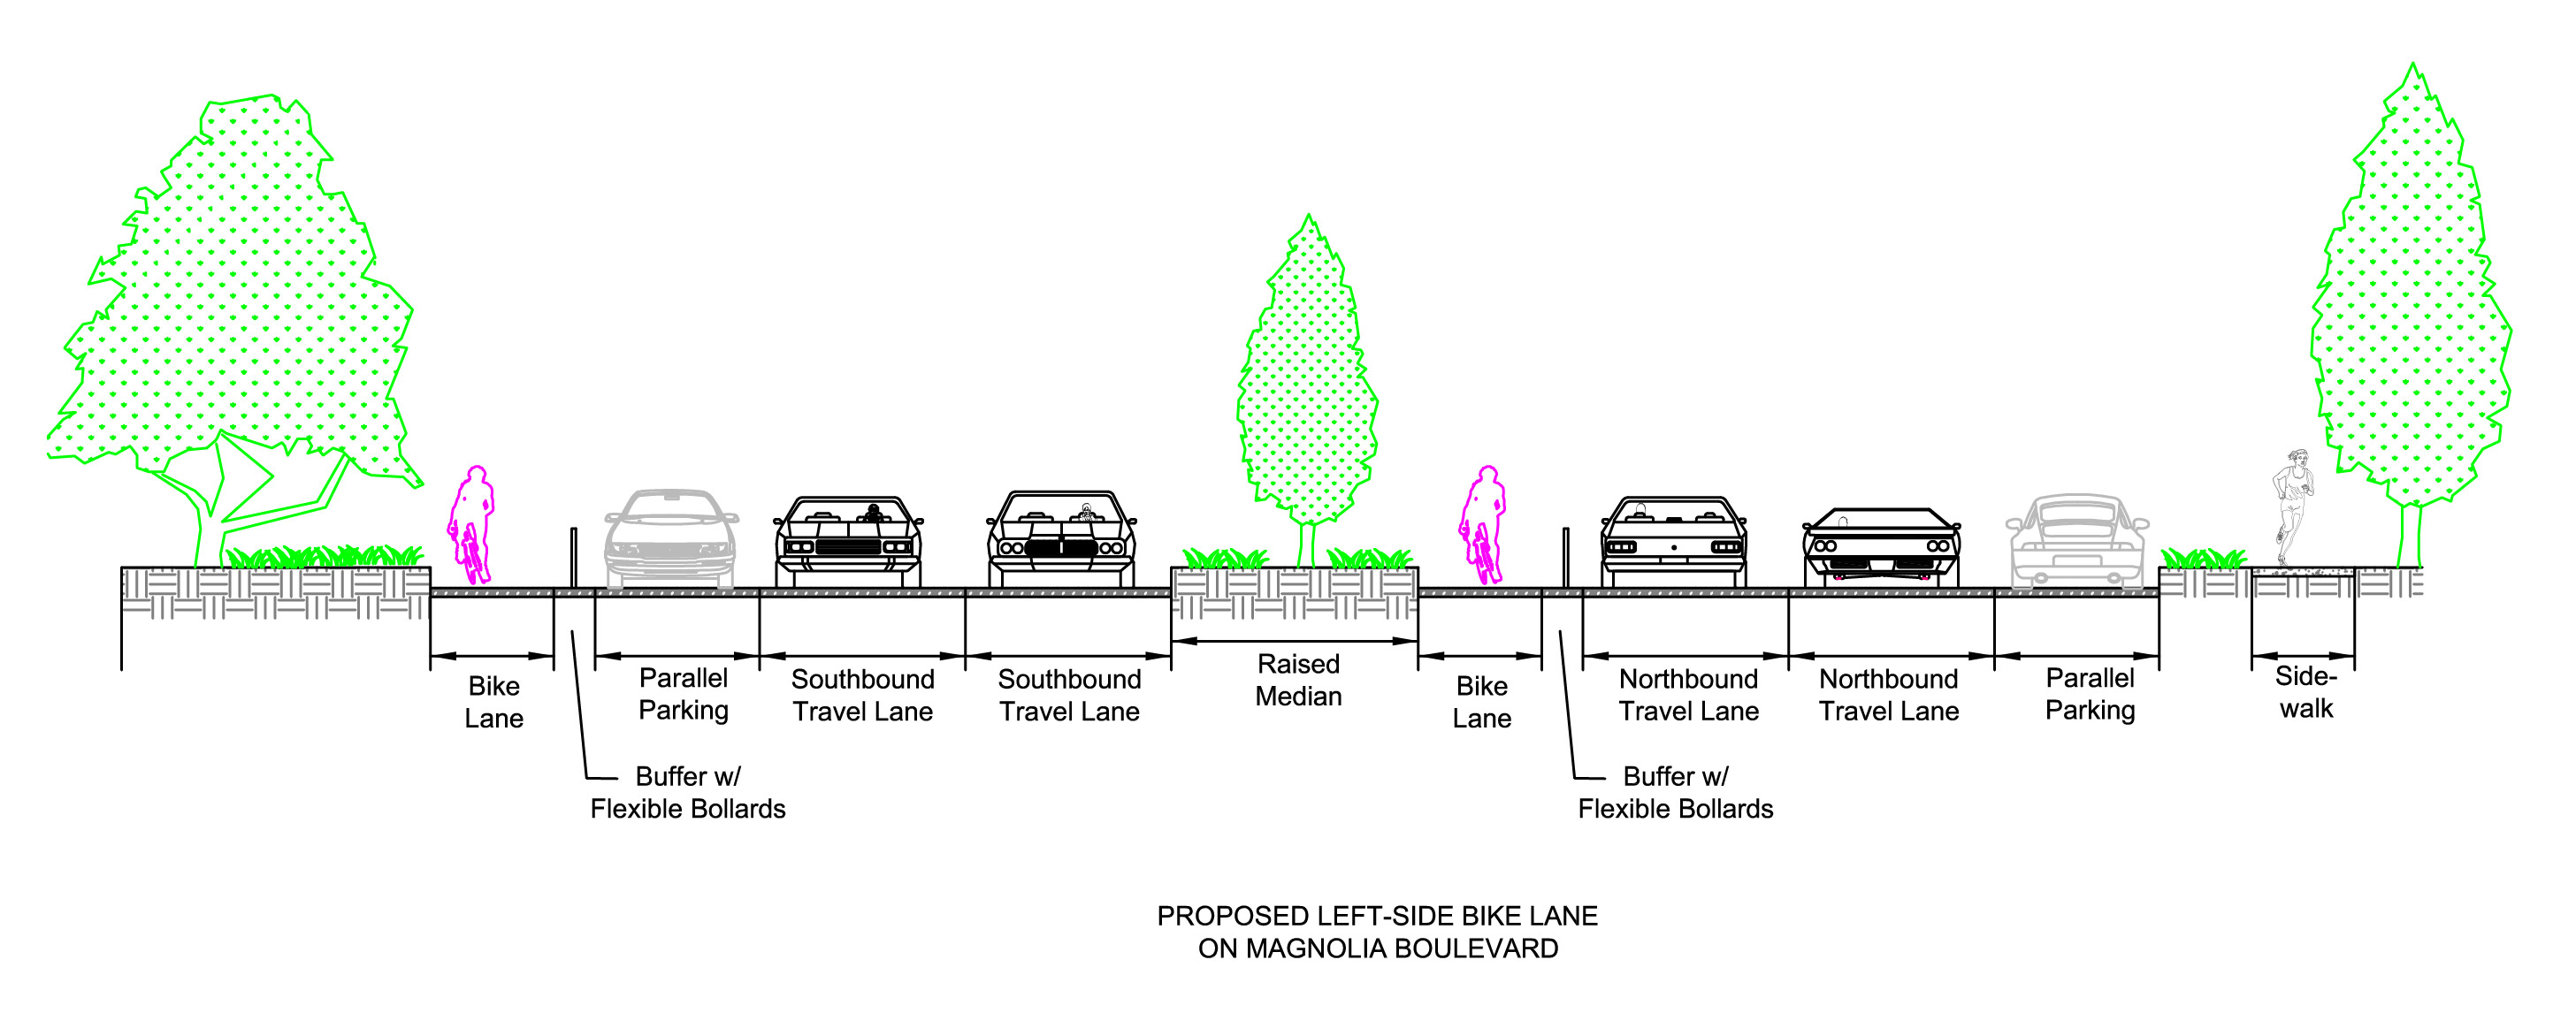 Proposed_Left-Side_Bike_Lane_Cross-Sections-01.jpg